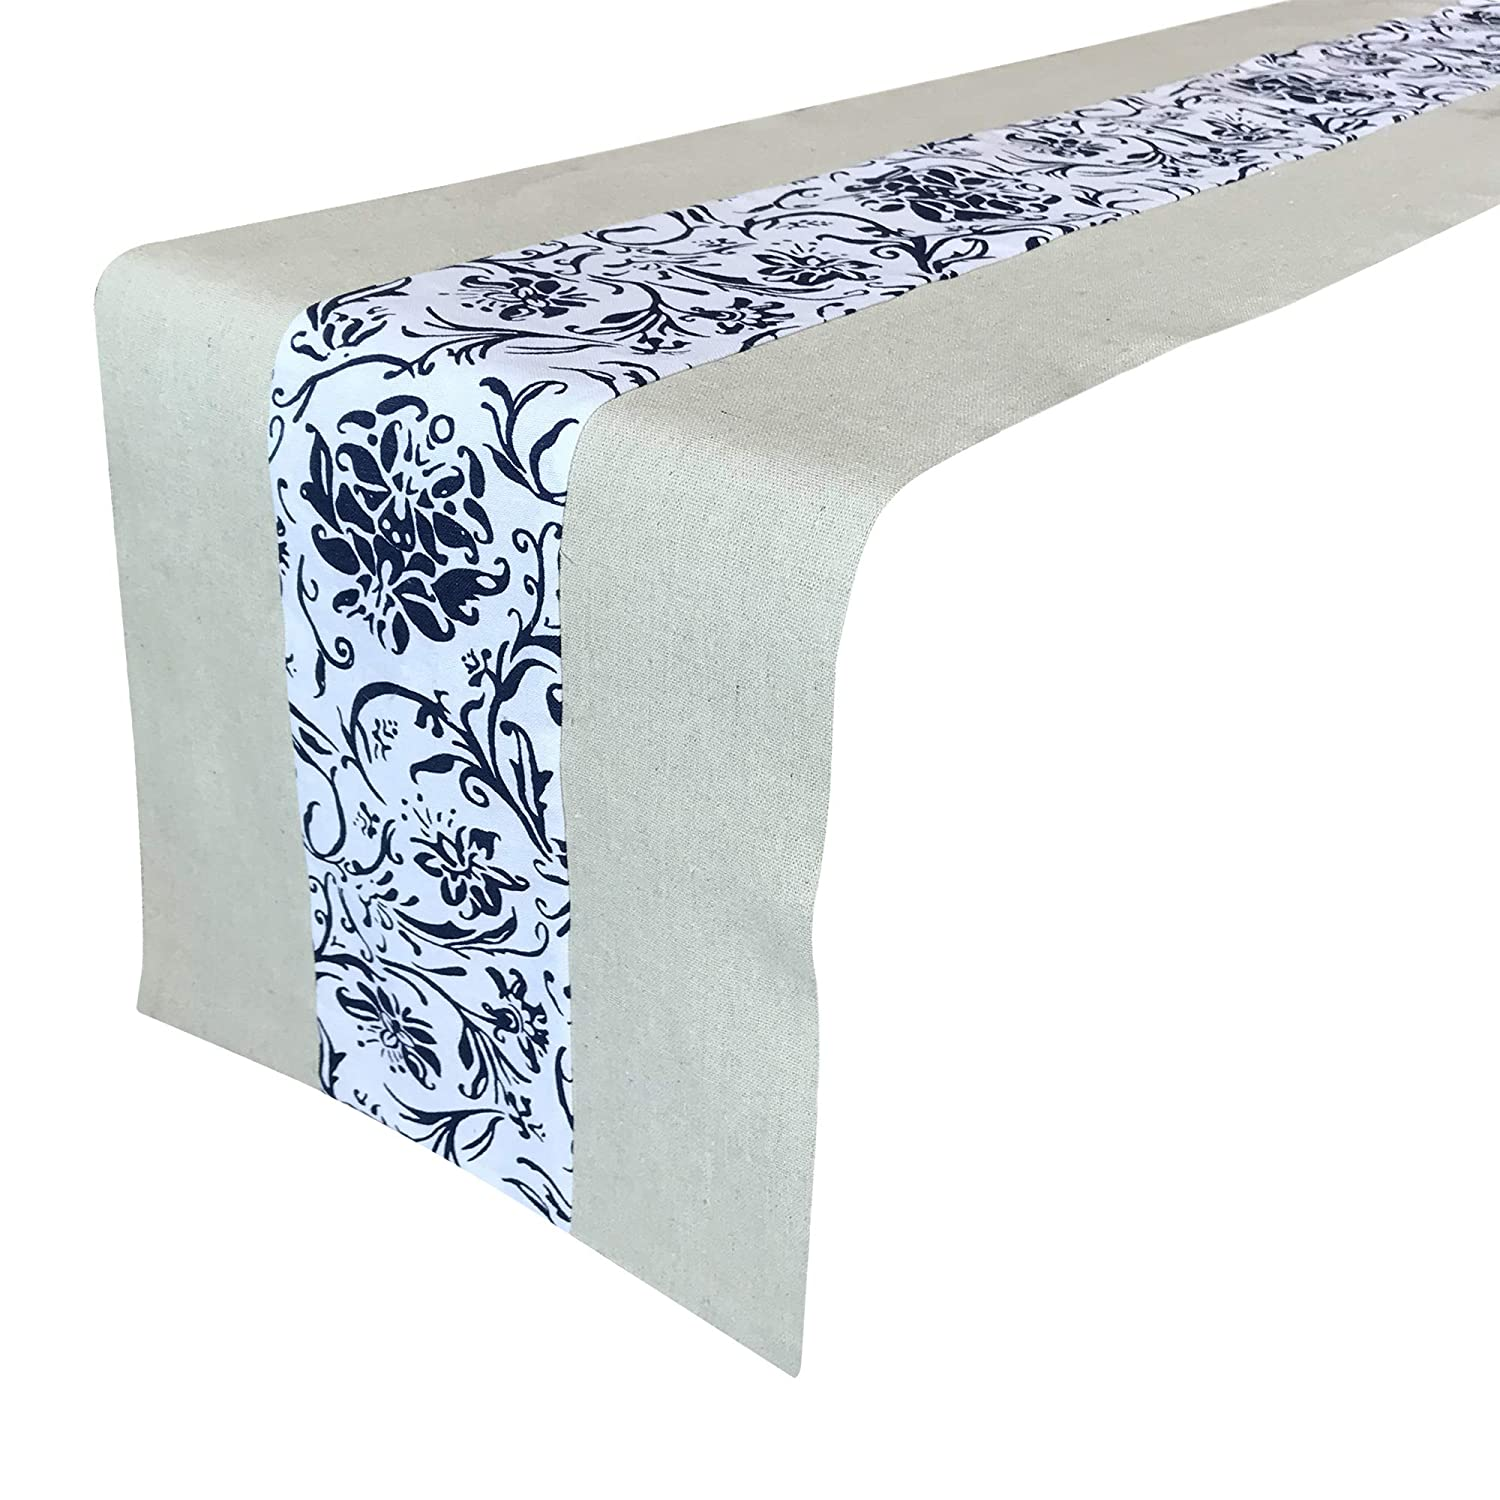 Rectangle//Oblong, 55 x 70 Inch, Linen Washable Table Cover for Kitchen Dinning Cafe Decoration LXKBD Tassel Tablecloth Cotton Linen Fabric